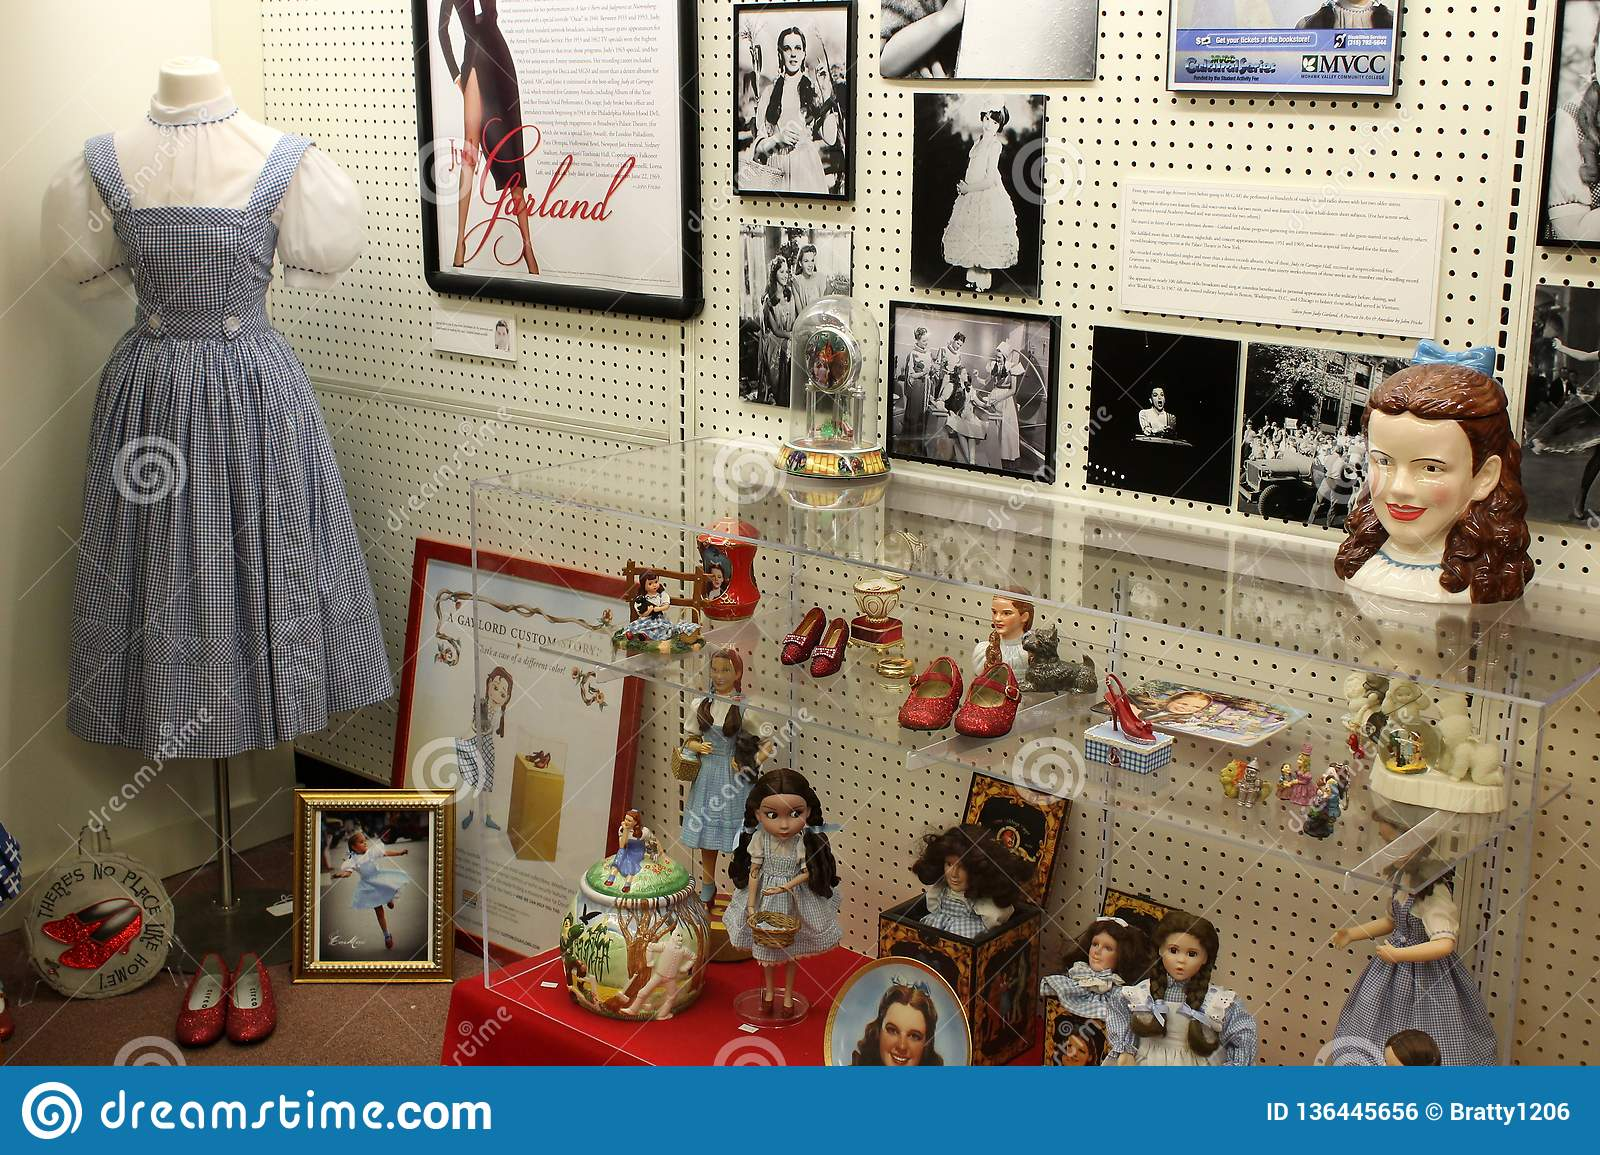 Glass Cases Holding Items From The Wizard Of Oz Era, Oz